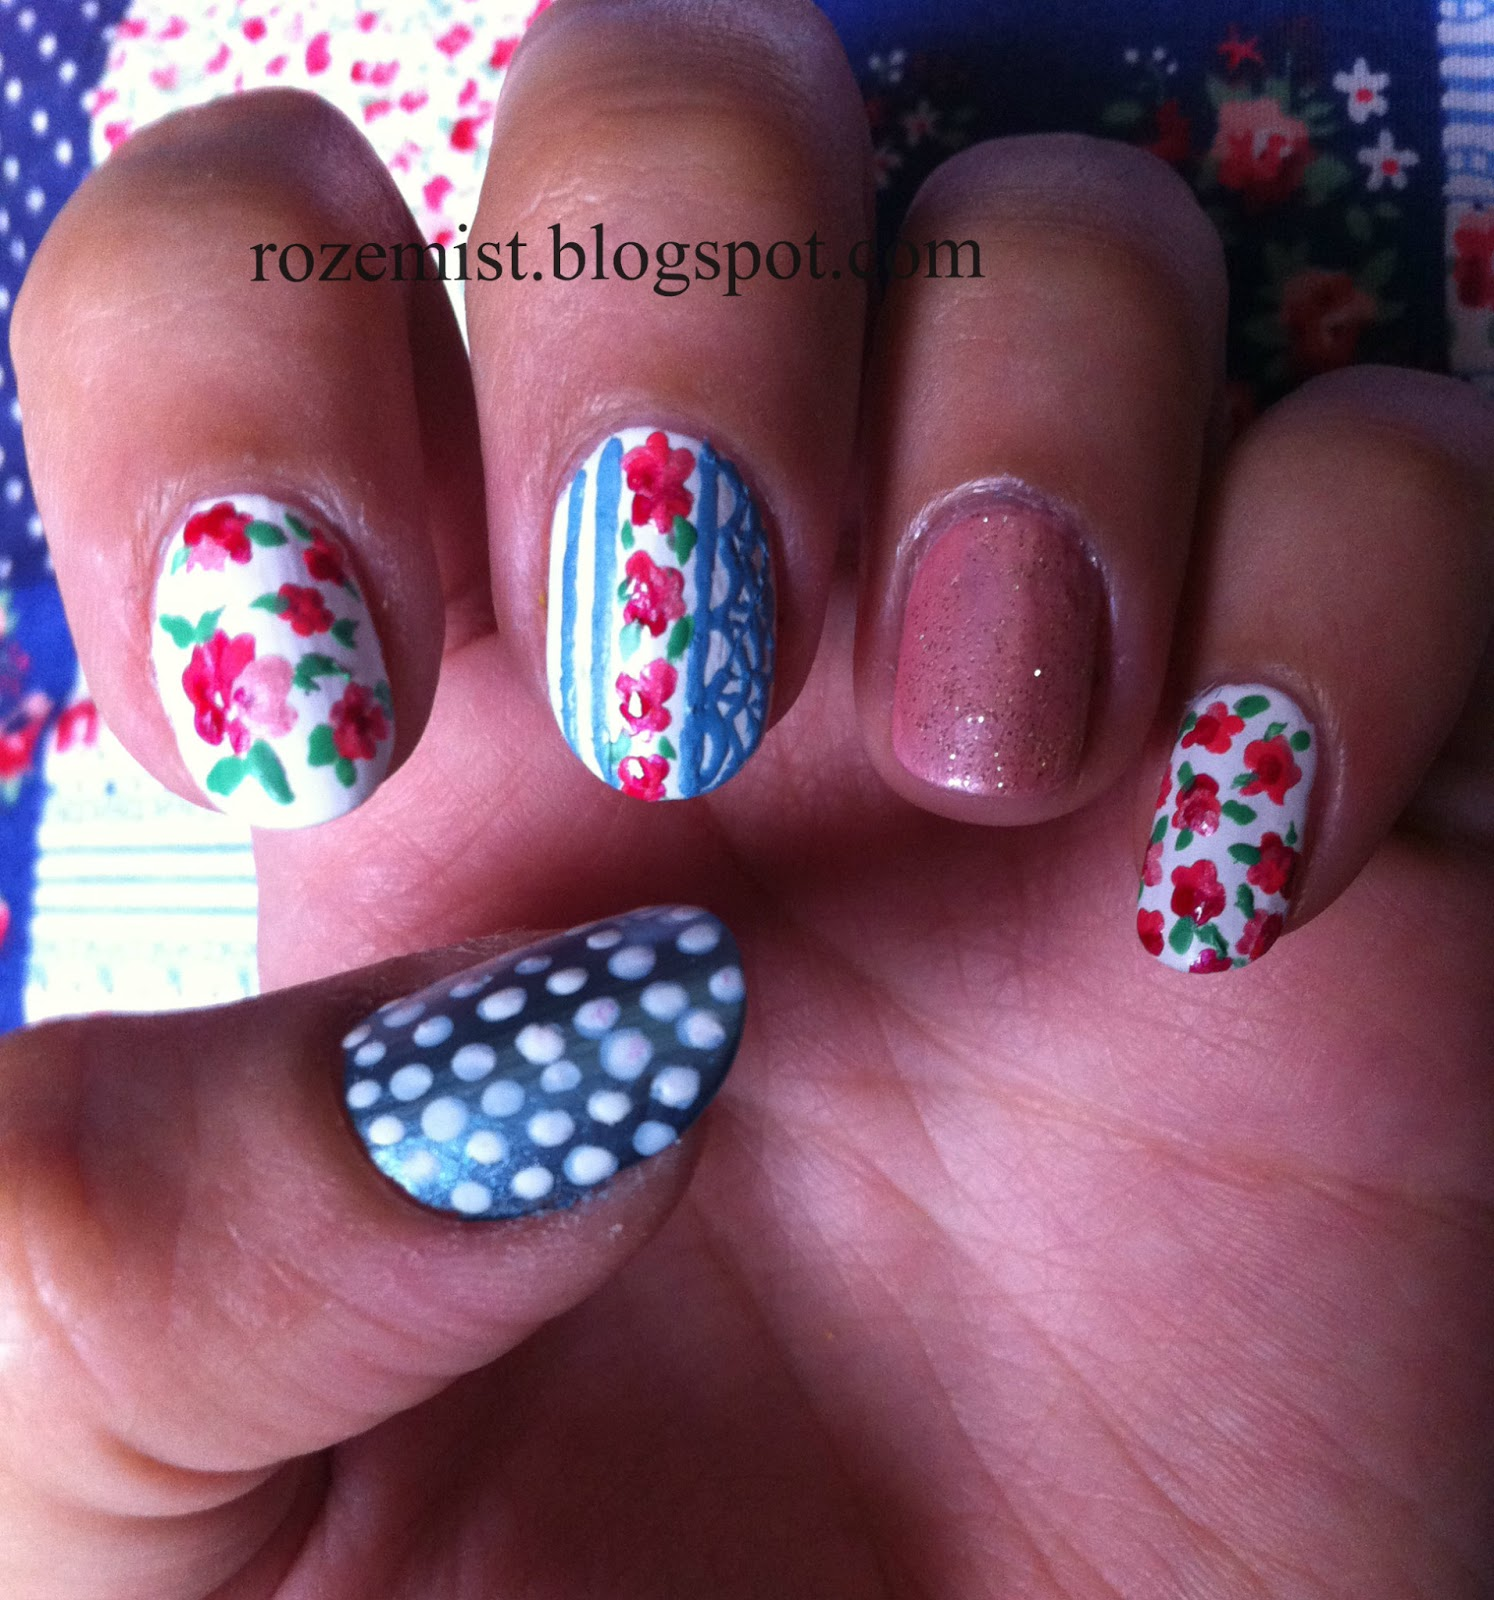 Nail arts by Rozemist: Cath Kidston/Vintage Inspired ...